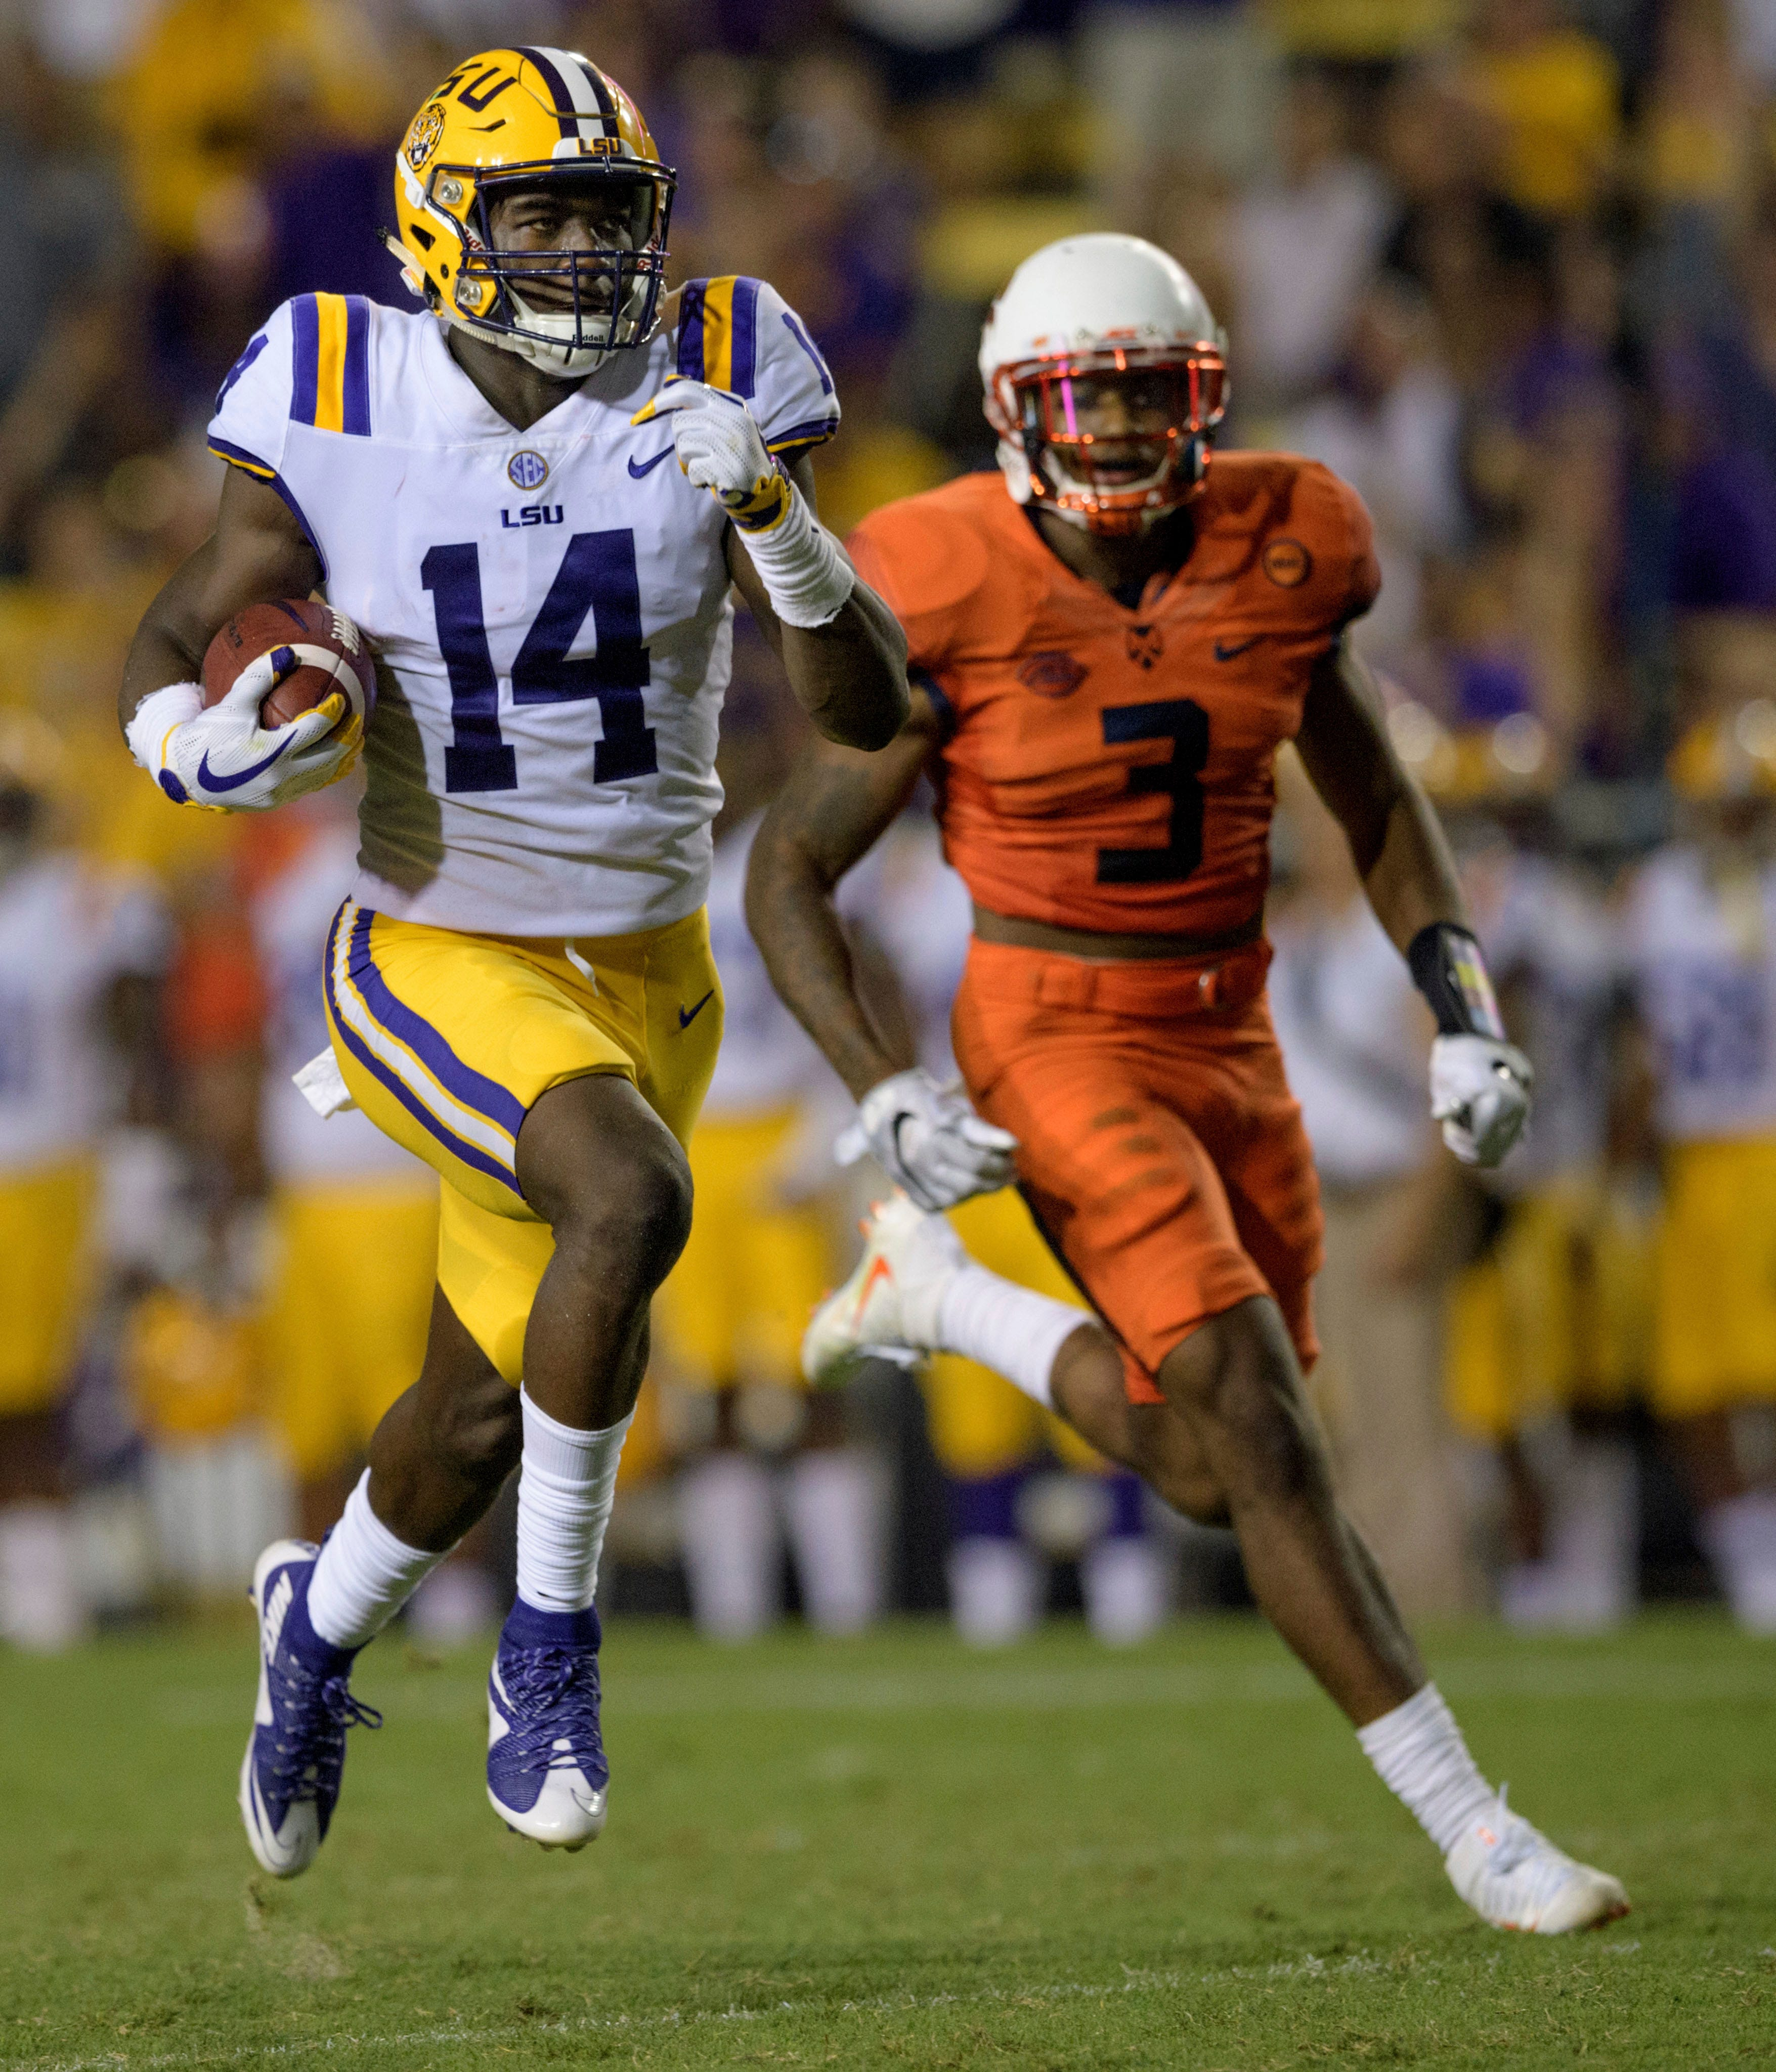 LSU wide receiver Drake Davis (14) runs for a touchdown against Syracuse defensive back Christopher Fredrick (3) during the second half of an NCAA college football game in Baton Rouge, La., Saturday, Sept. 23, 2017.